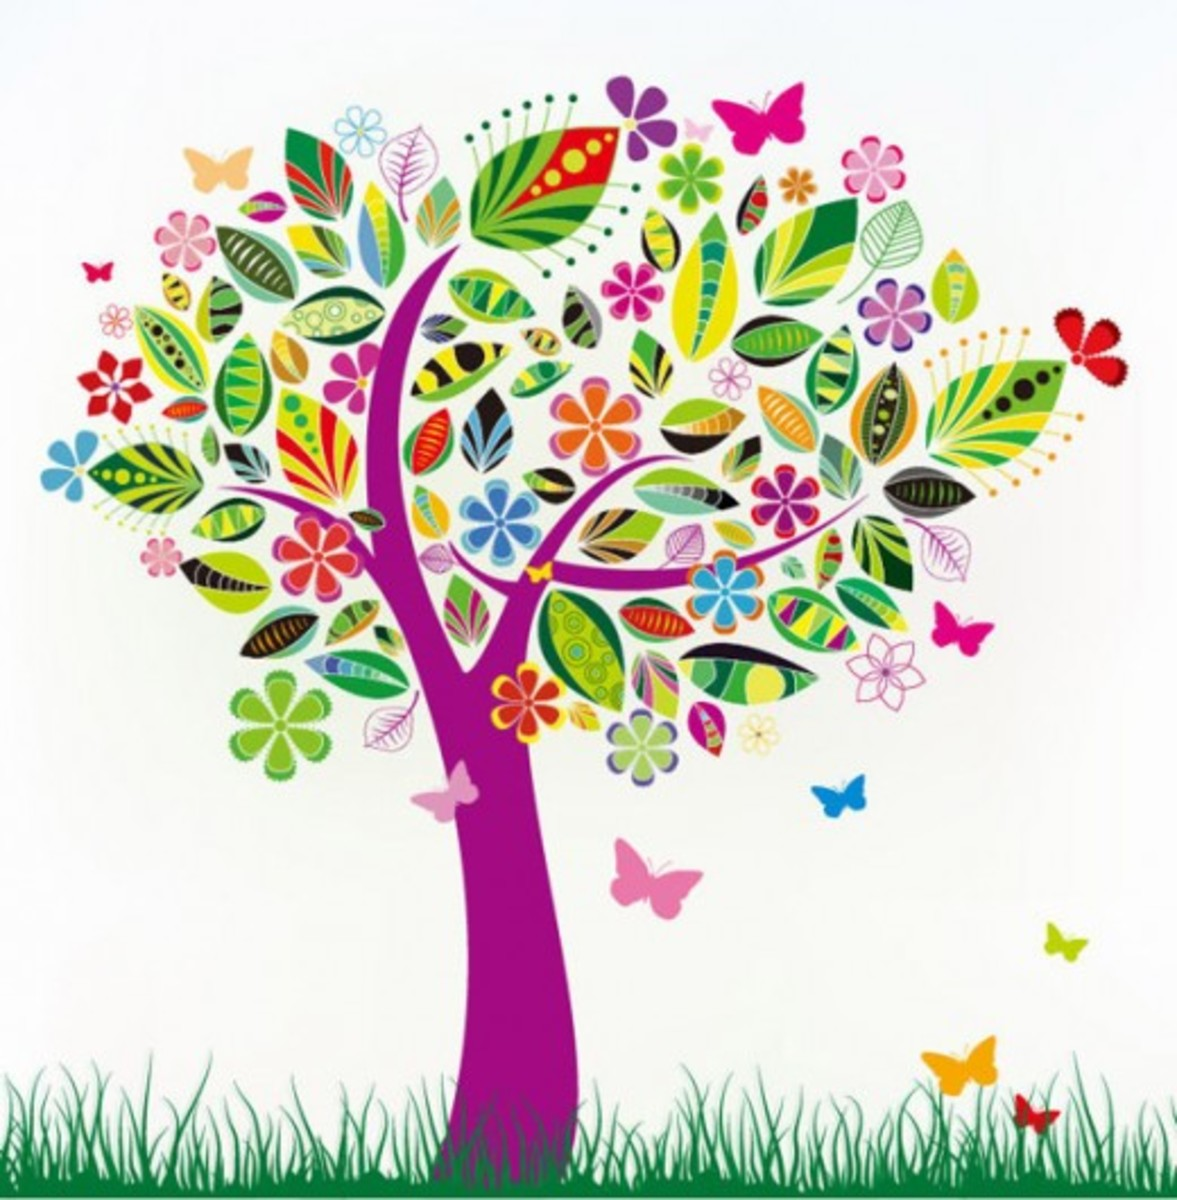 Purple Tree with Flowers and Butterflies